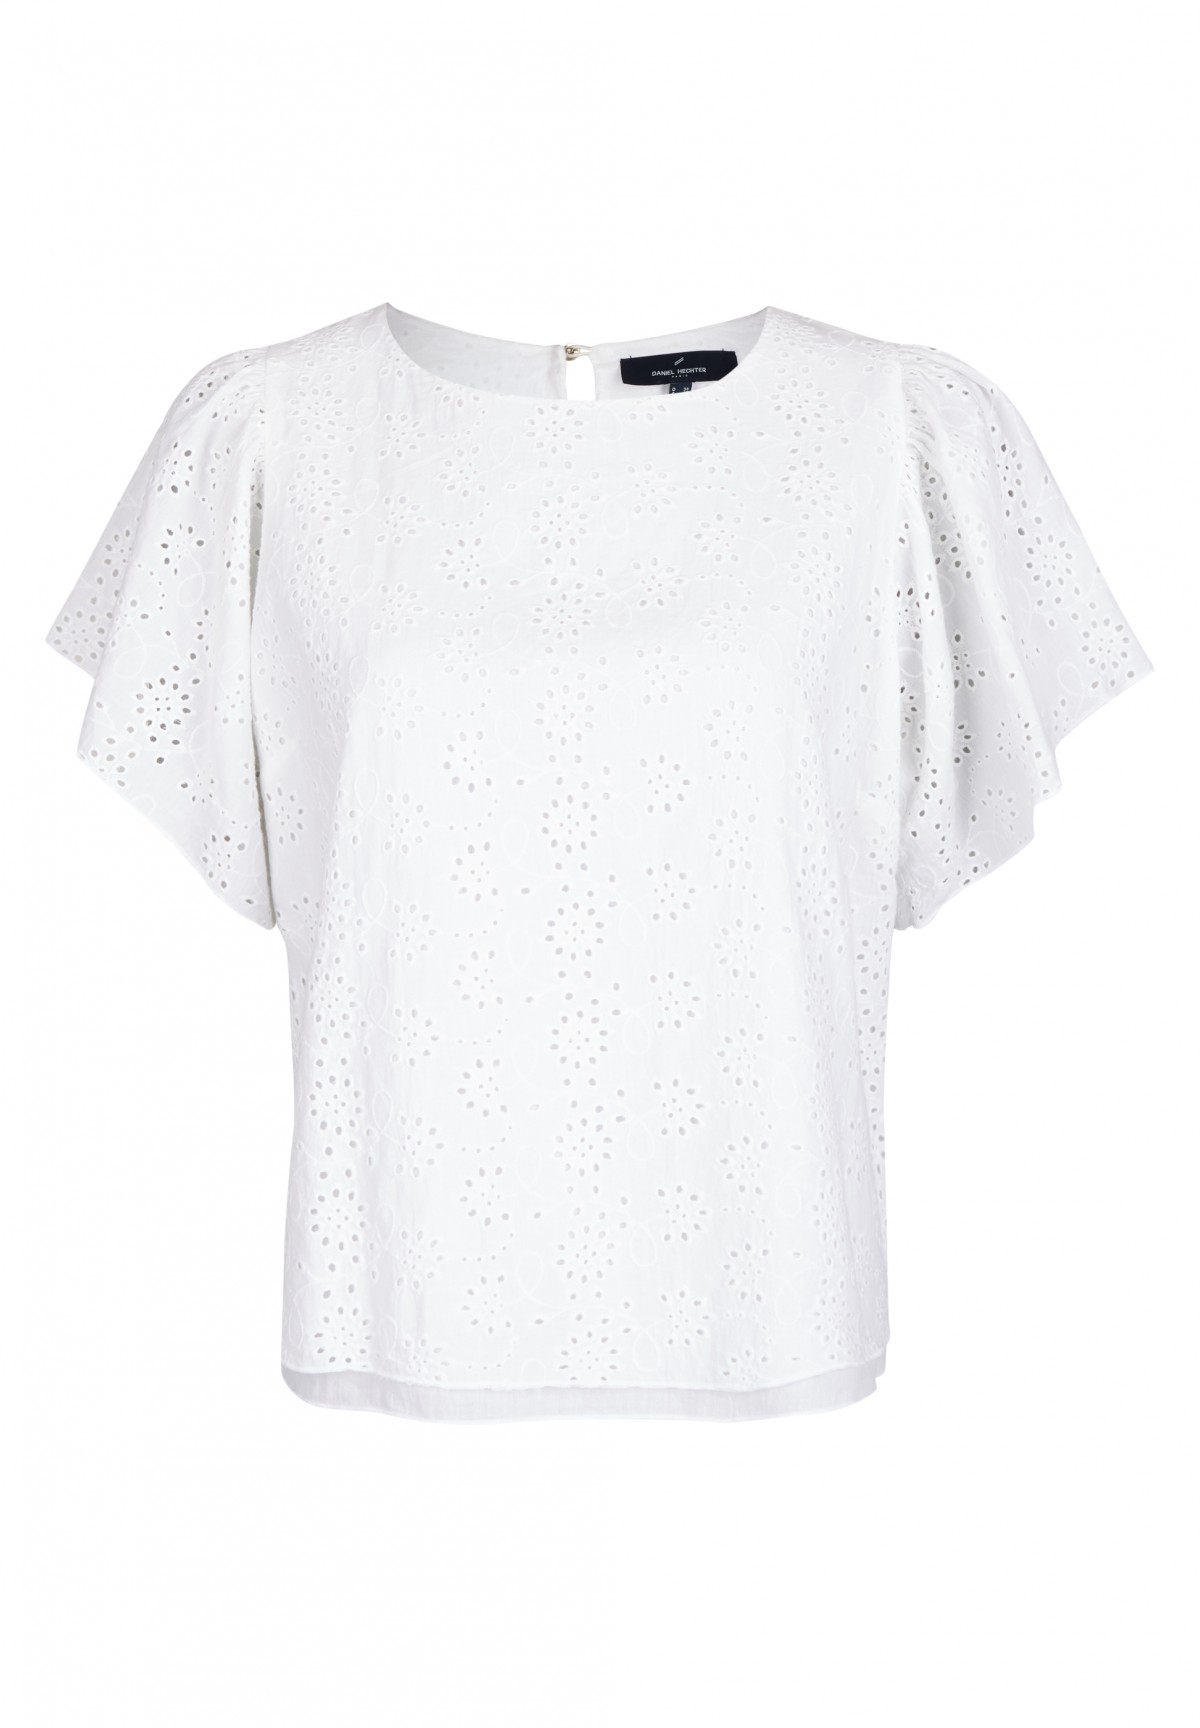 Top en broderies anglaise /